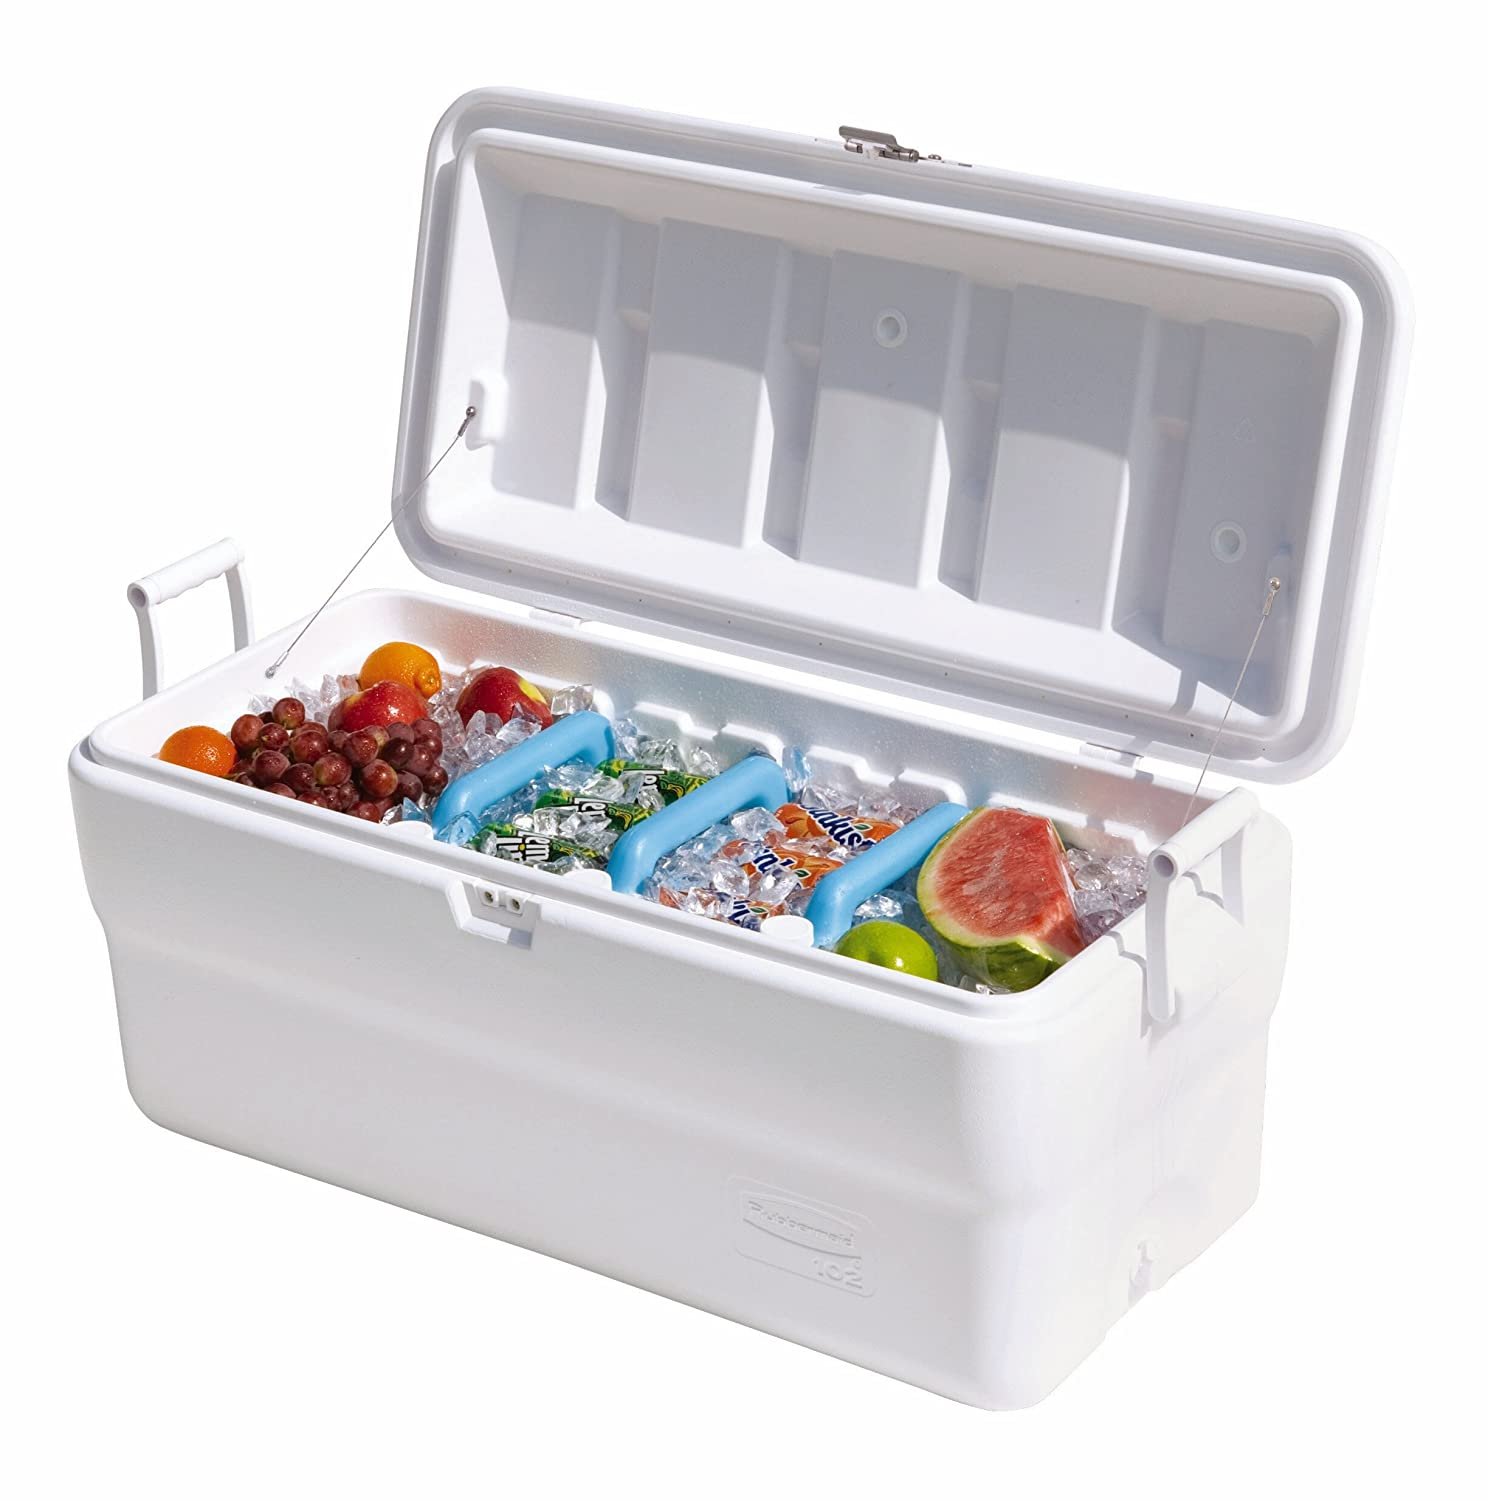 Amazon.com Rubbermaid Gott Marine Cooler / Ice Chest 102-quart White Kitchen Storage And Organization Product Accessories Kitchen u0026 Dining  sc 1 st  Amazon.com & Amazon.com: Rubbermaid Gott Marine Cooler / Ice Chest 102-quart ... Aboutintivar.Com